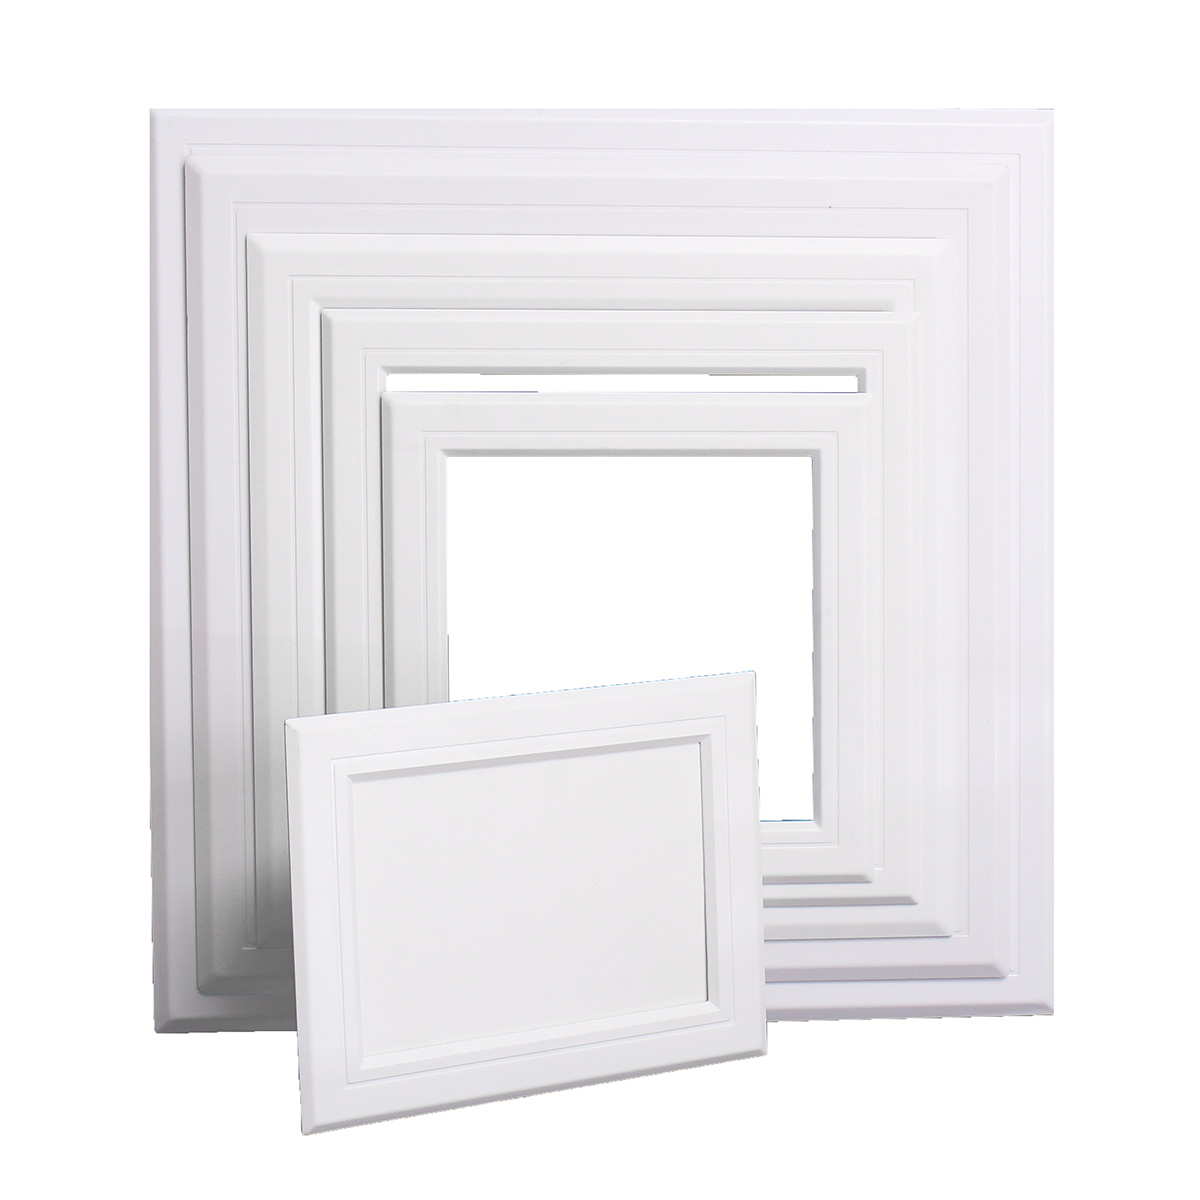 medium resolution of abs wall ceiling access panel 7 sizes white inspection plumbing wiring door revision hatch cover in core vents from home improvement on aliexpress com